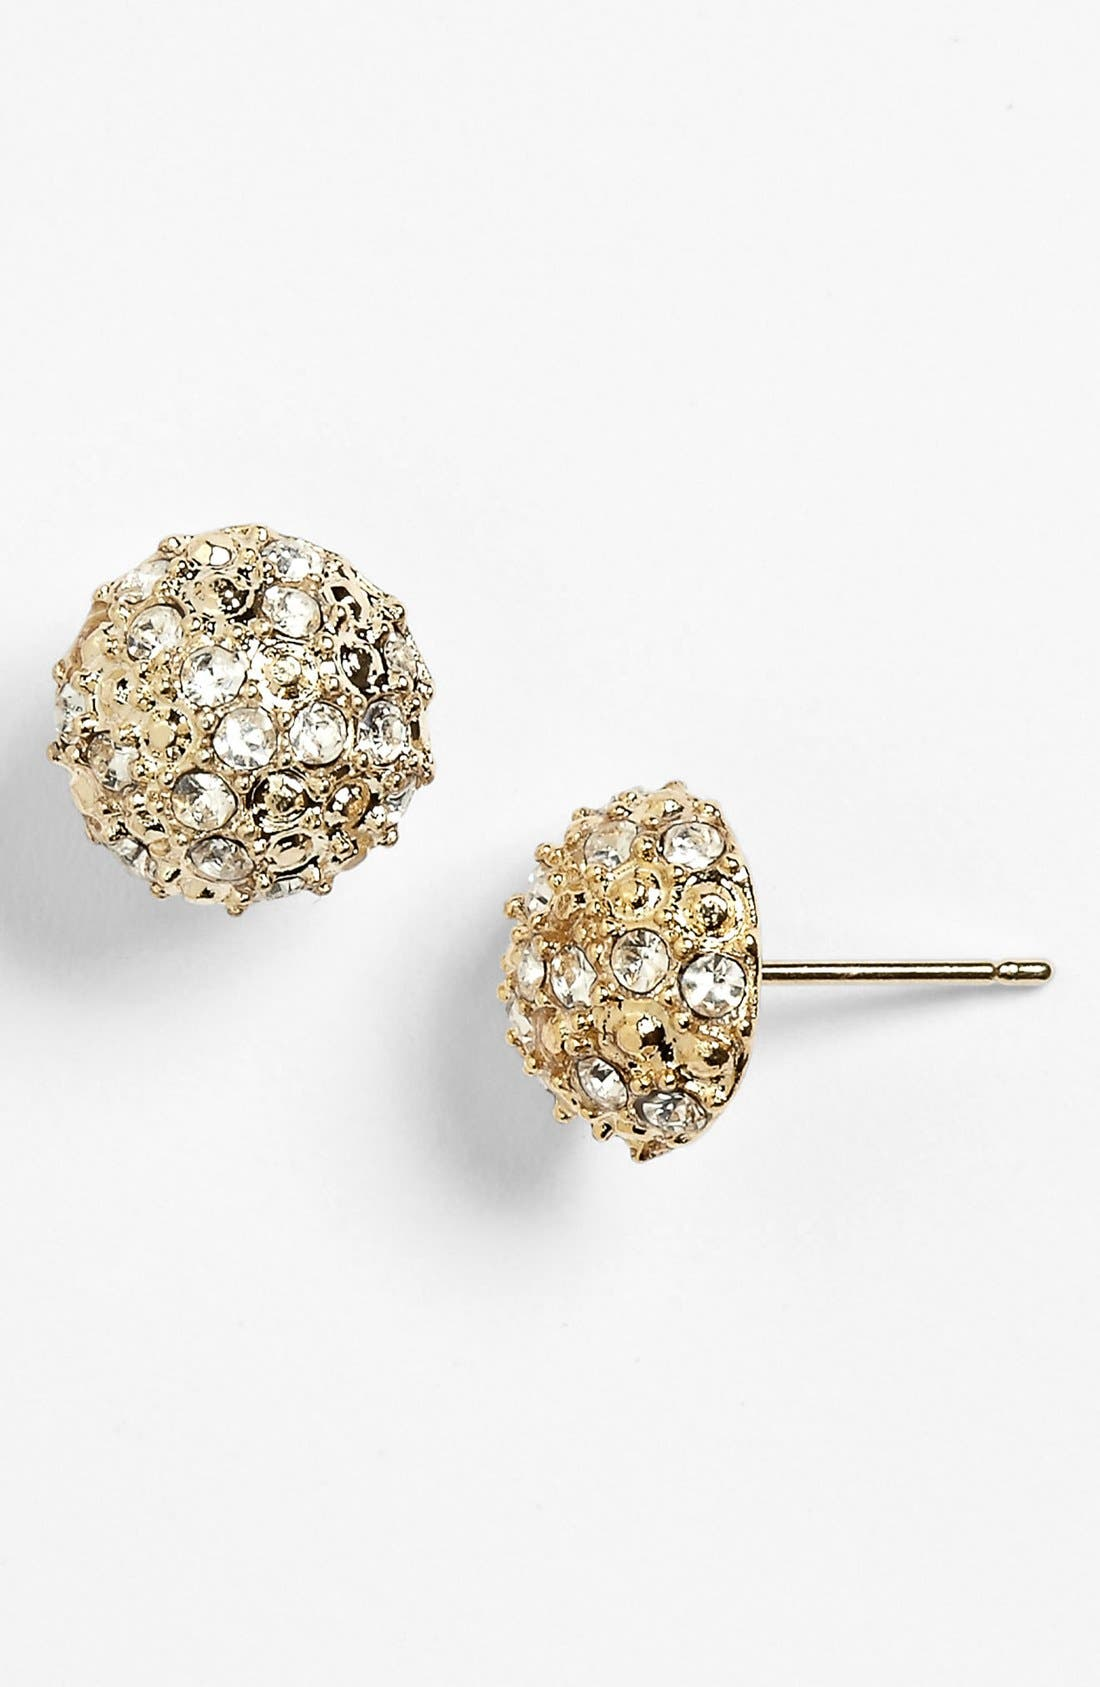 Main Image - Rachel Rhinestone Dome Stud Earrings